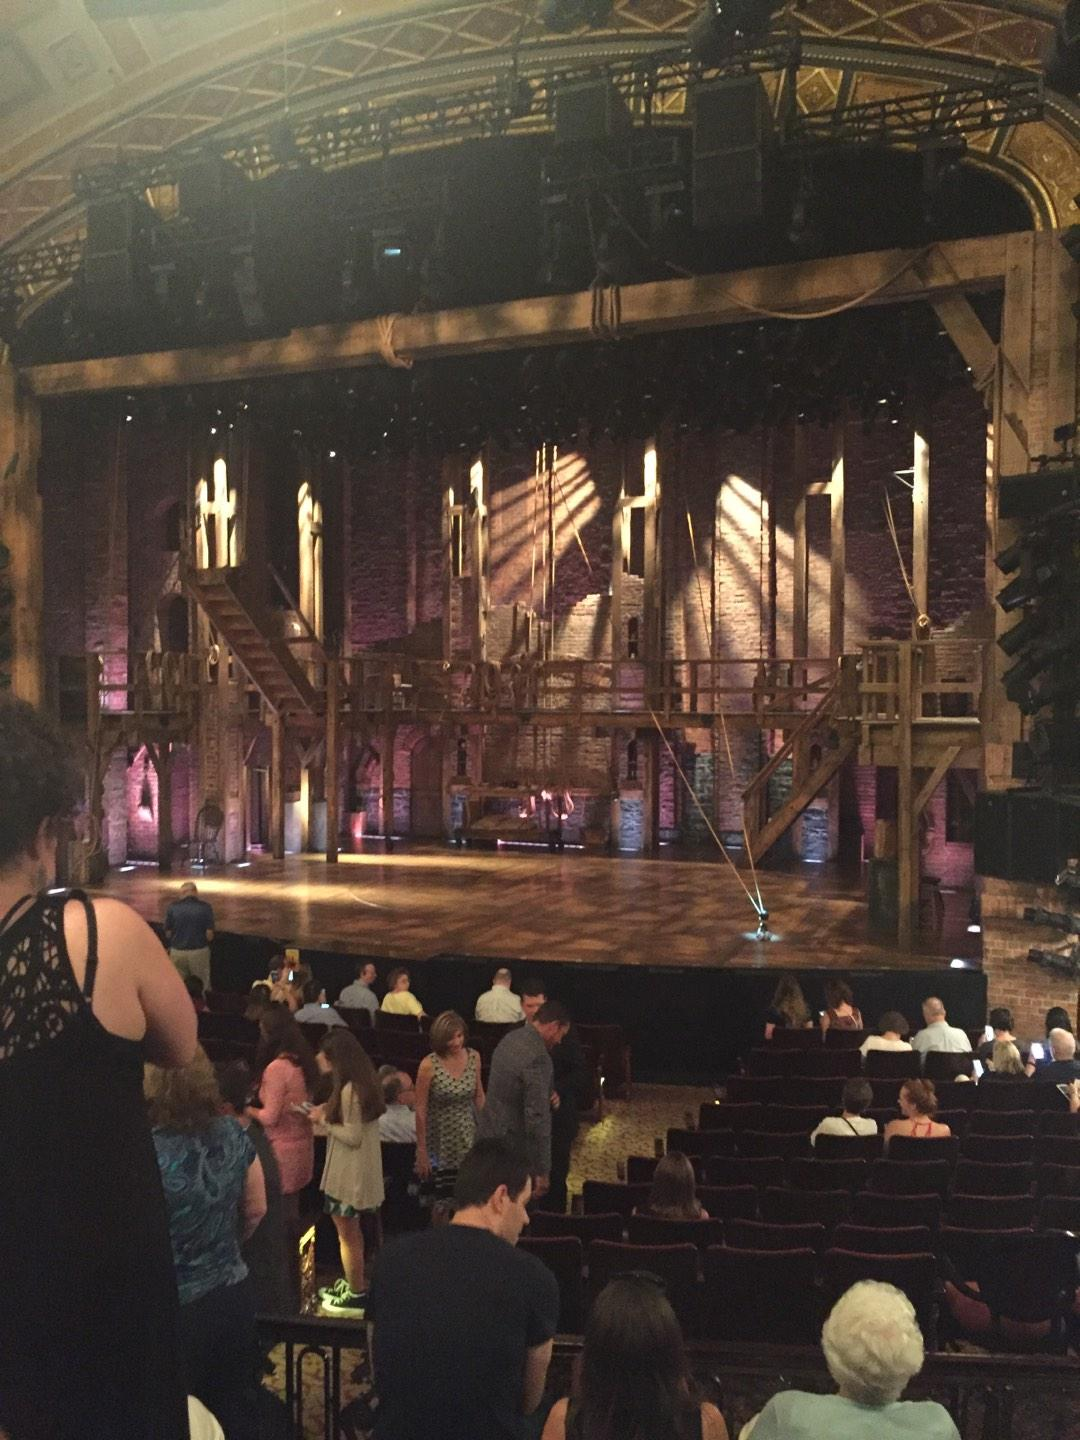 Richard Rodgers Theatre Section Orch Row P Seat 110